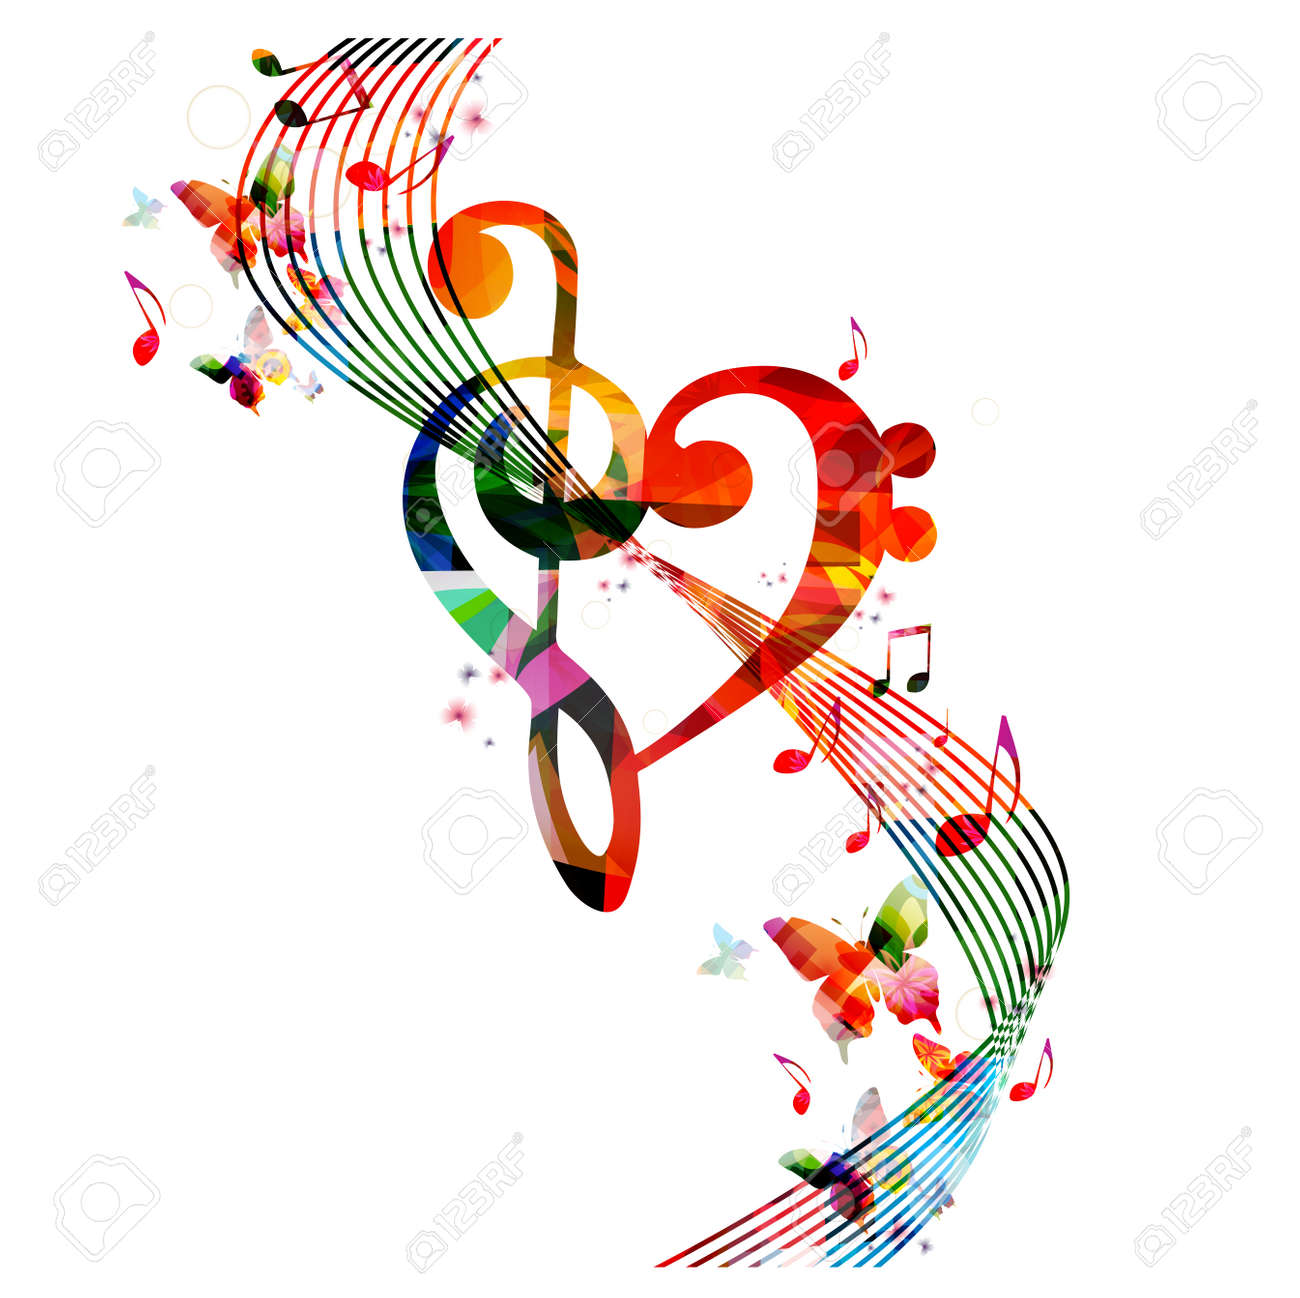 Colorful G-clef heart with music notes and butterflies - 60982717